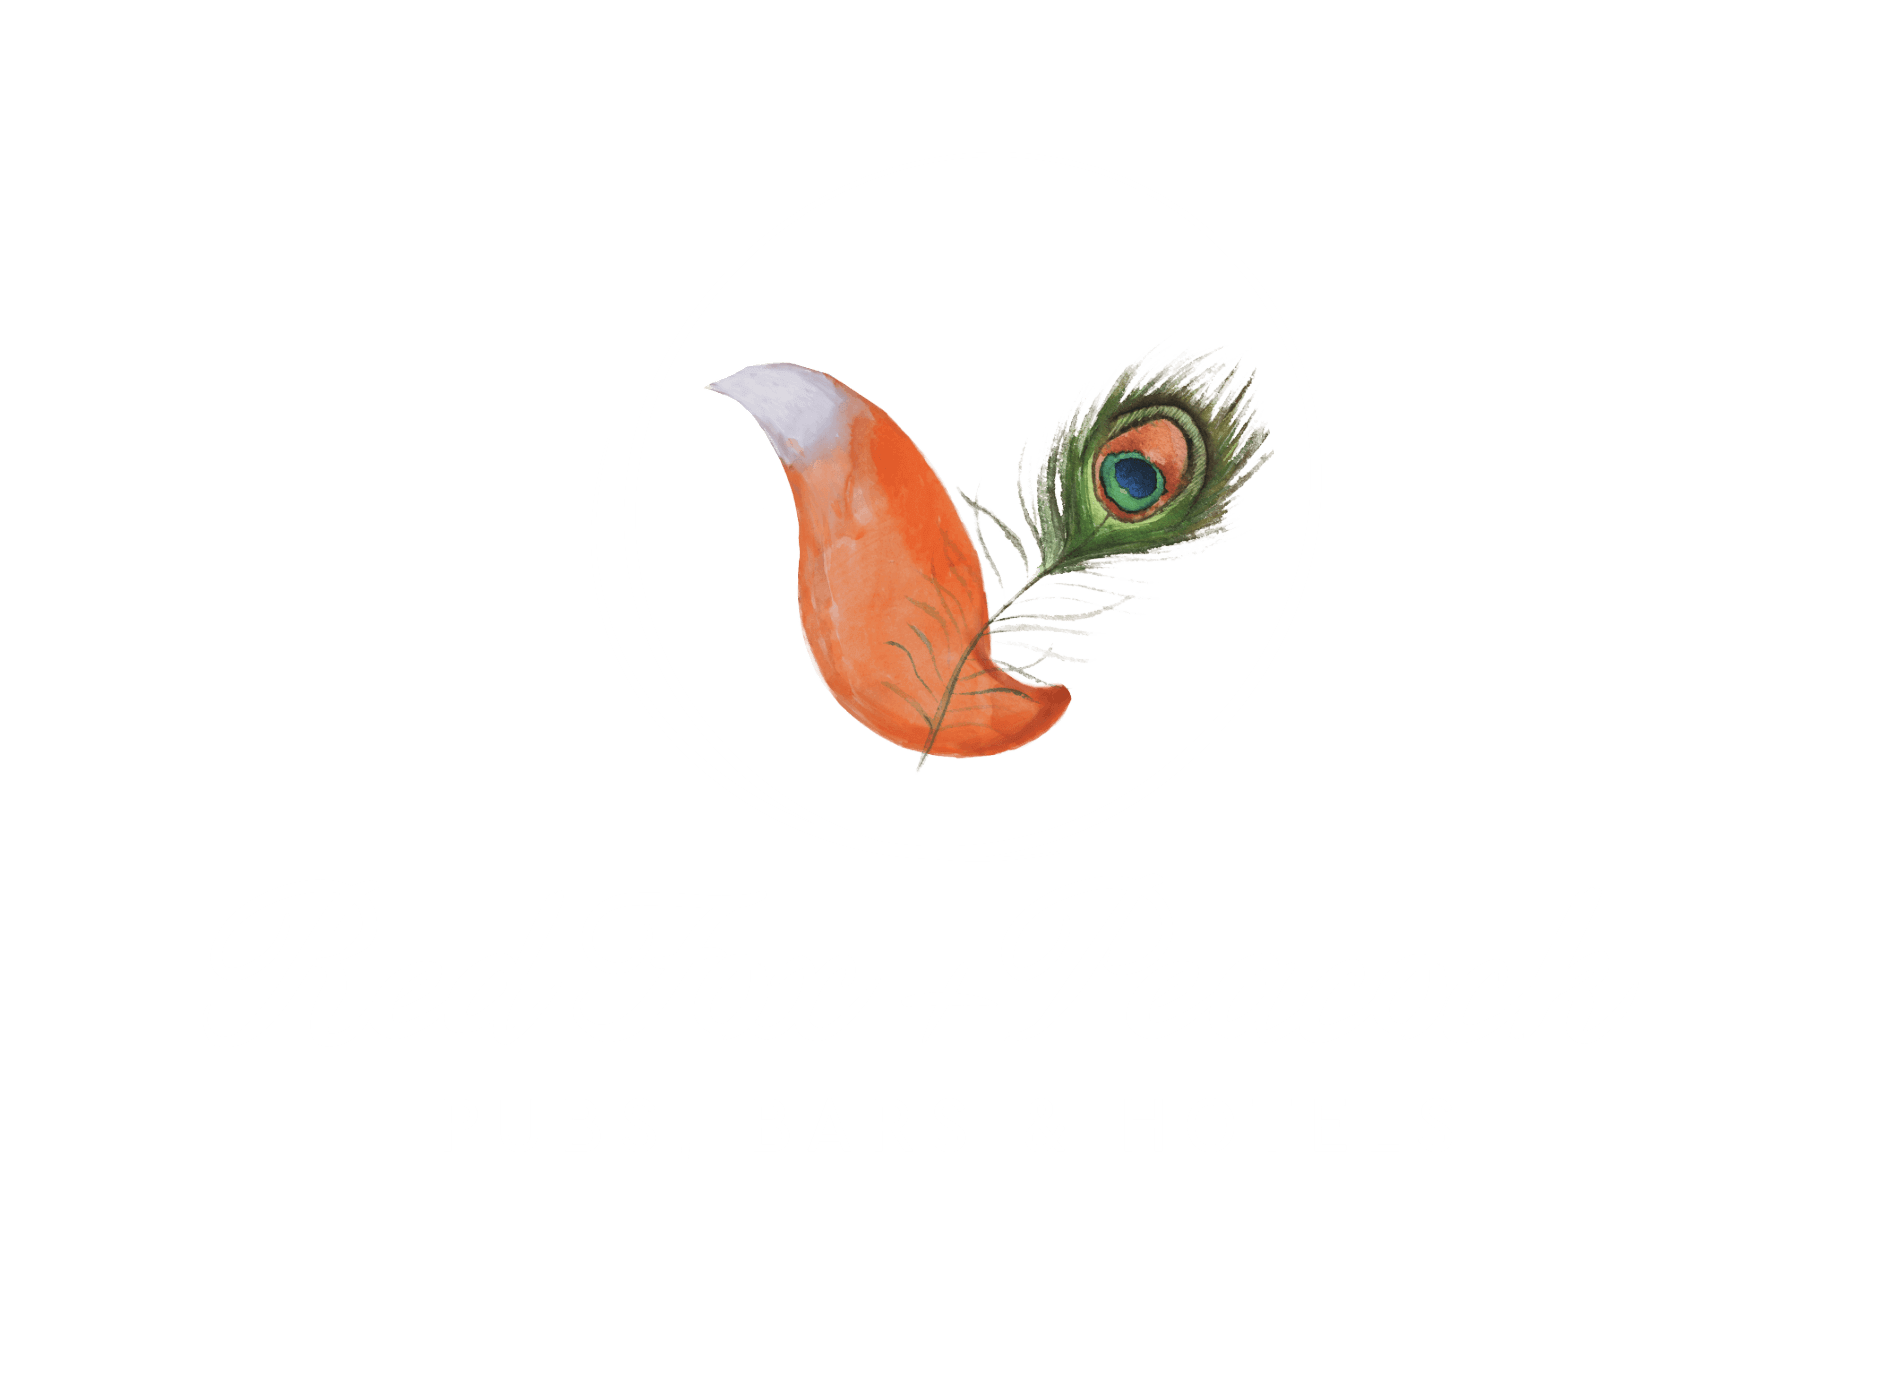 The Red Fox & Peacock